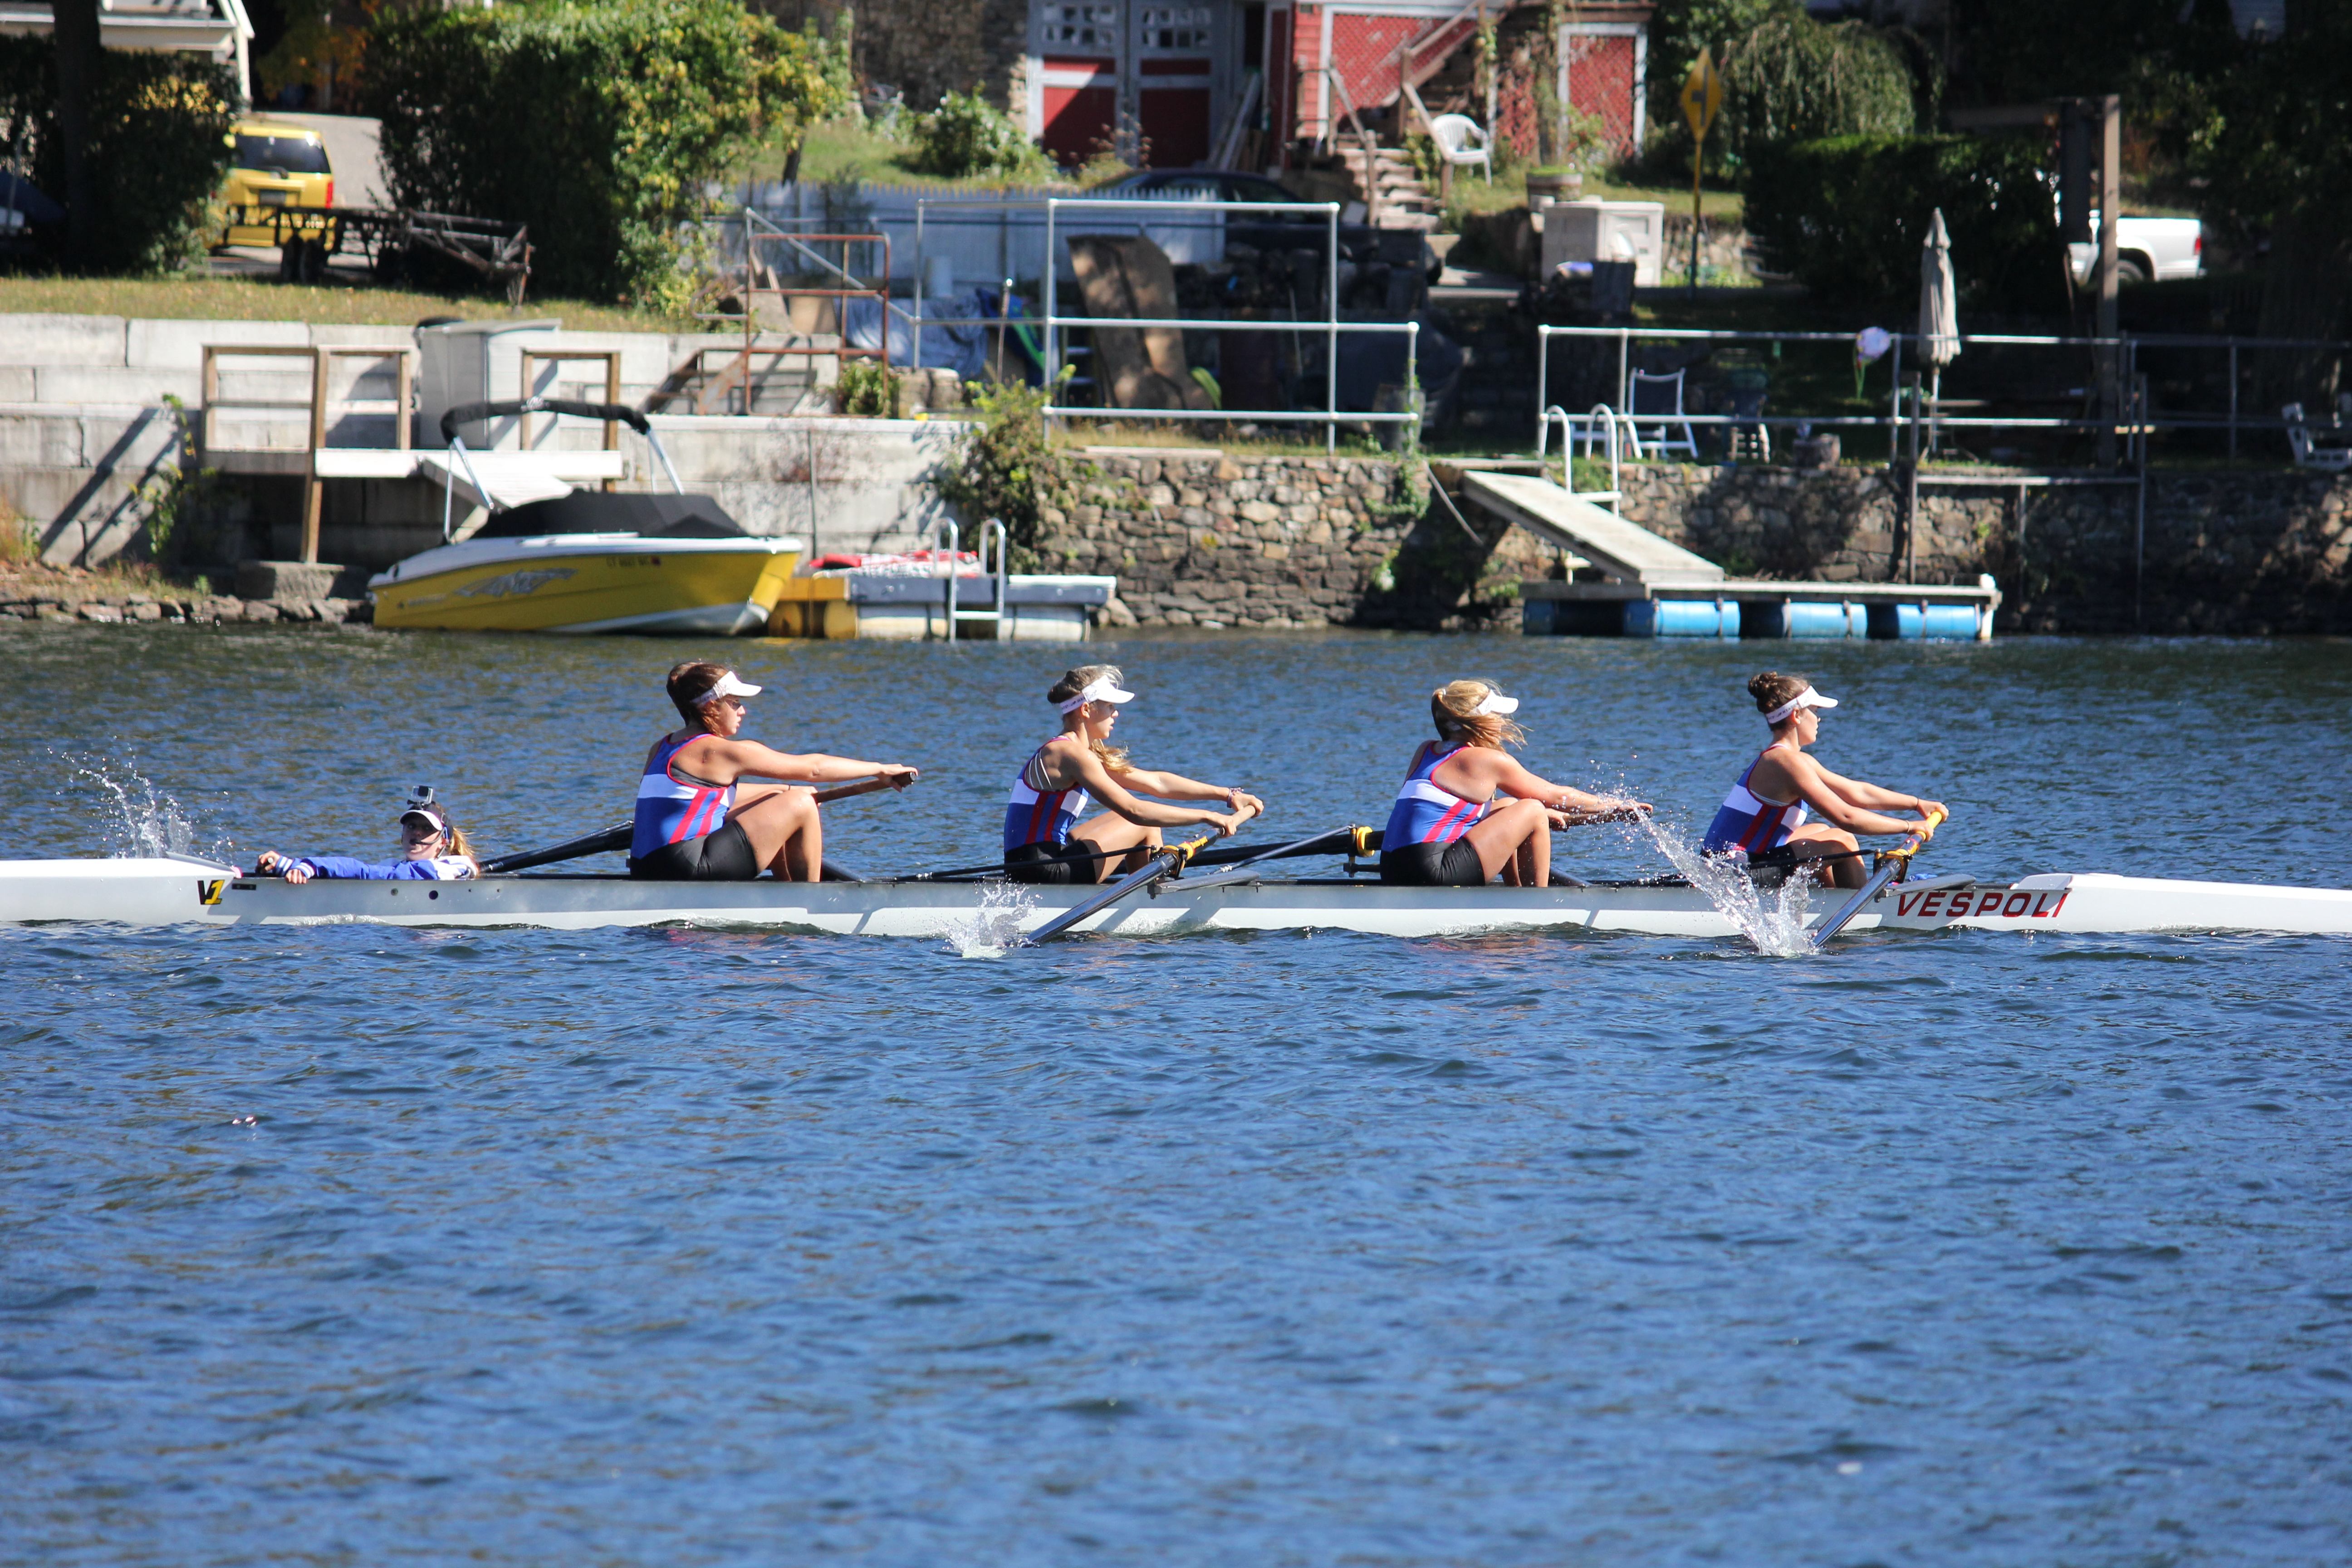 Twenty-seven Norwalk River Rowers Head to the Head of the Charles